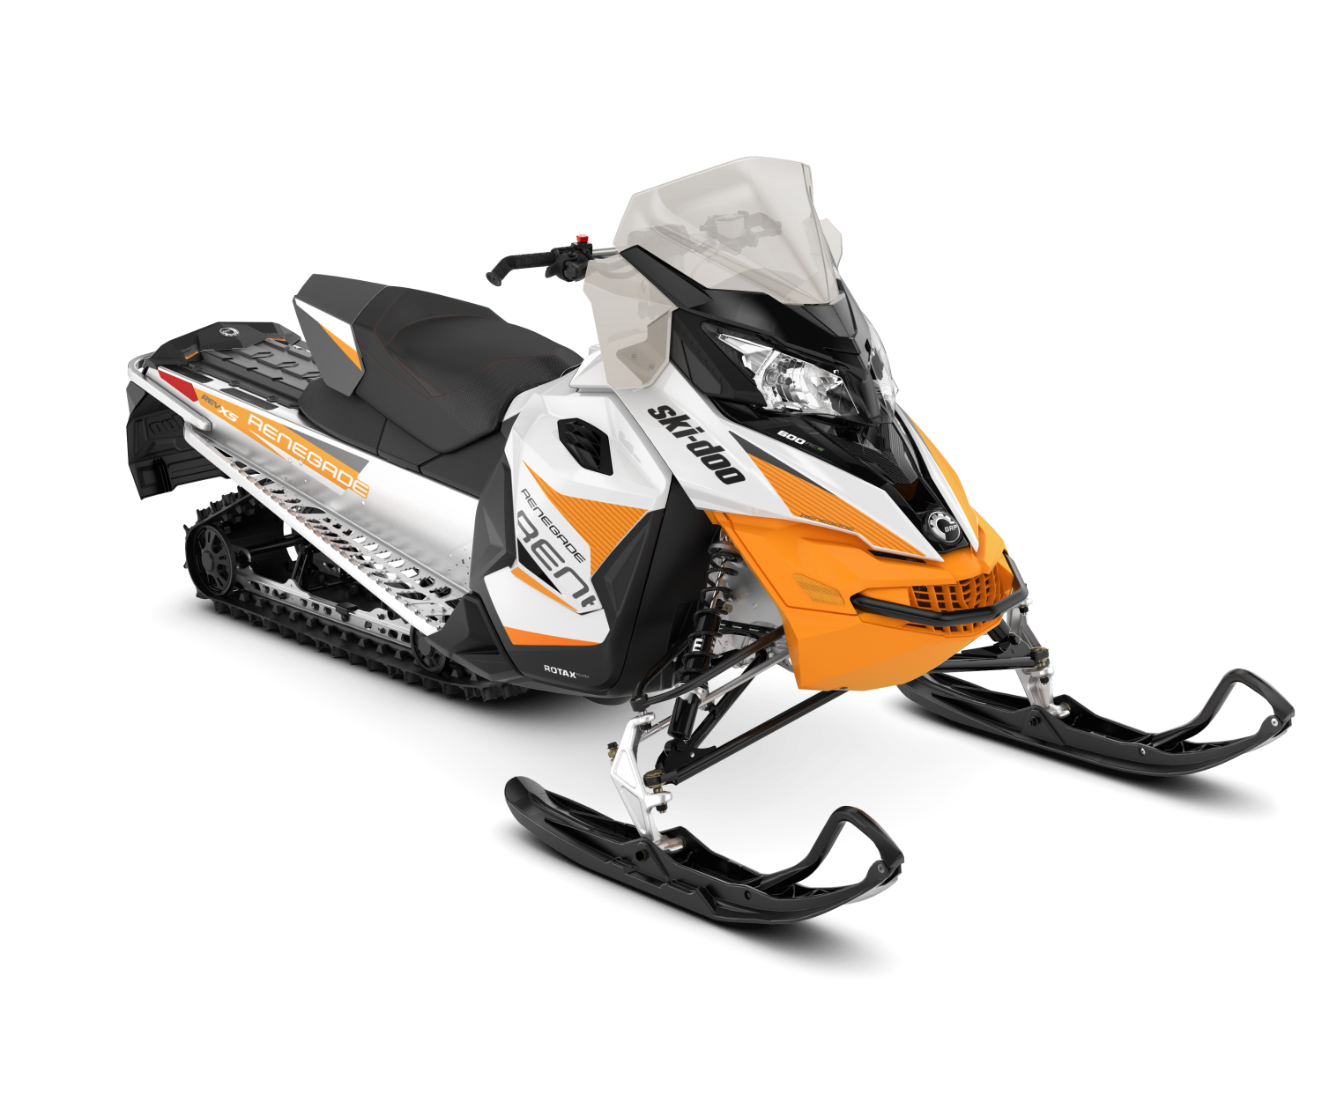 2018 Ski-Doo Renegade Sport 600 ACE in Honesdale, Pennsylvania